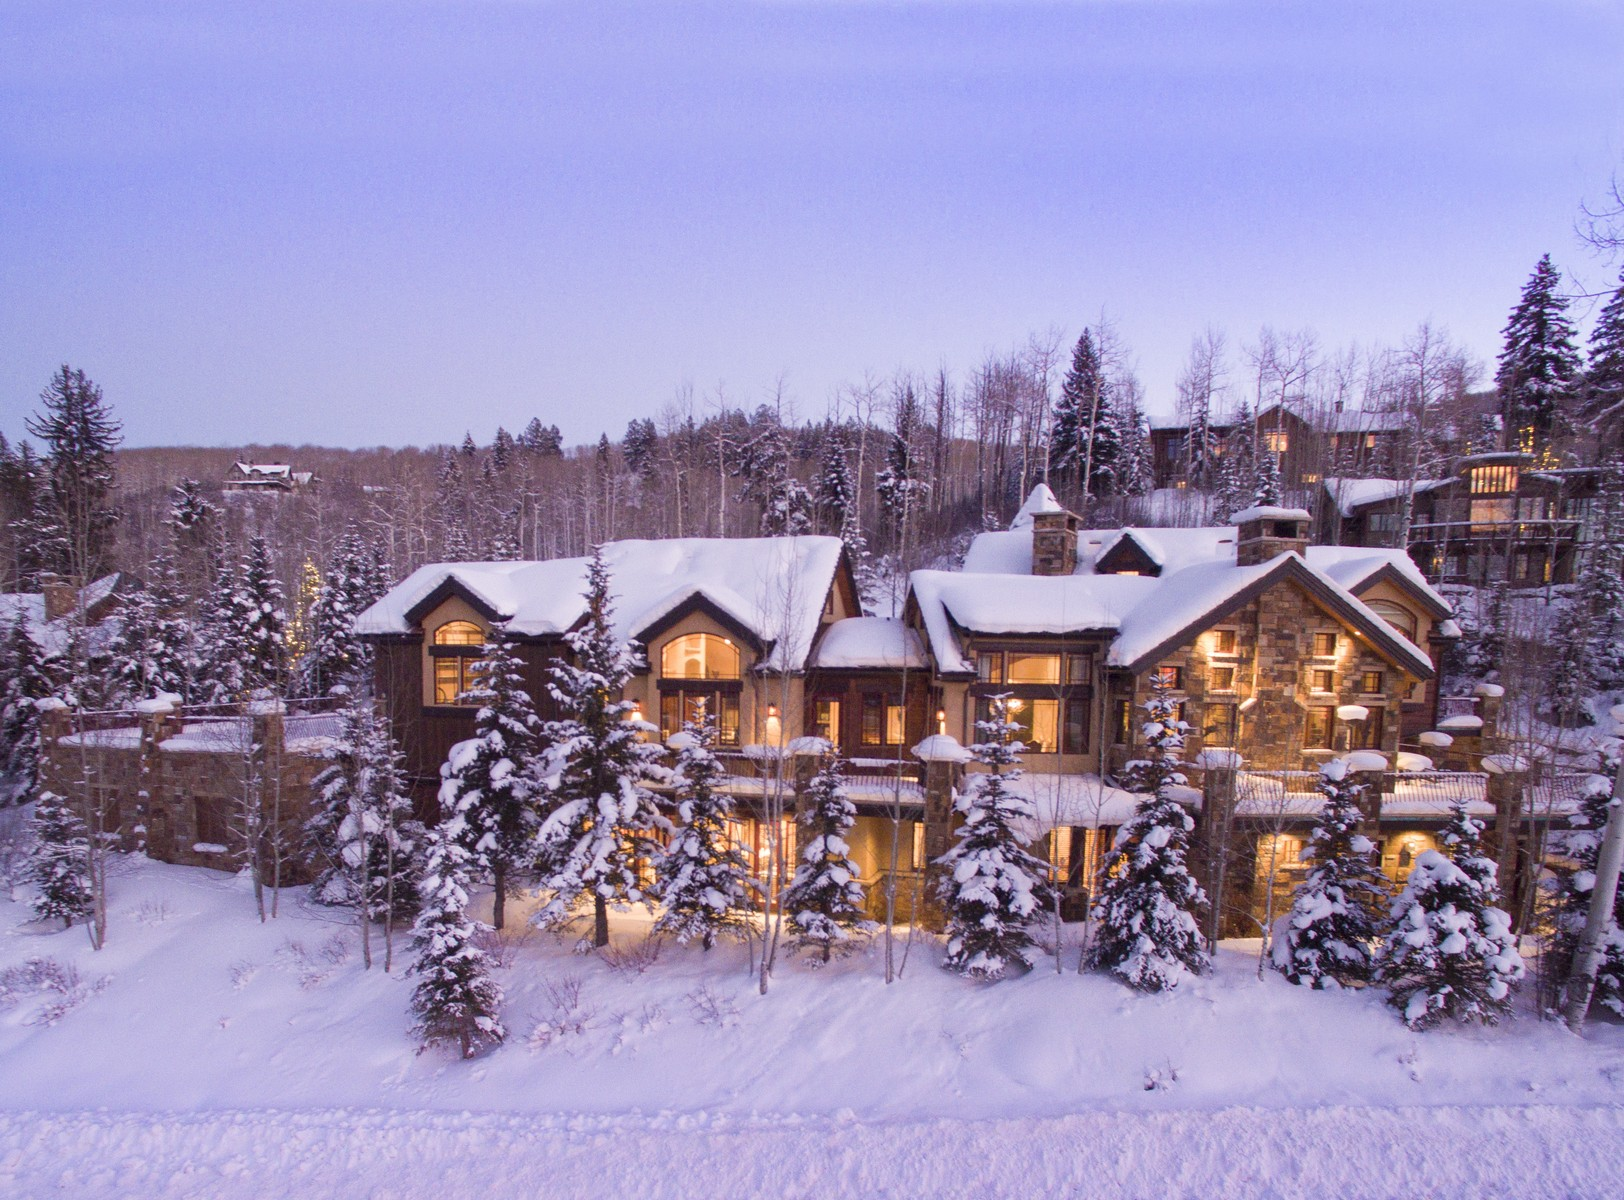 Casa Unifamiliar por un Venta en Home in The Pines 400 Pine Crest Drive Snowmass Village, Colorado, 81615 Estados Unidos